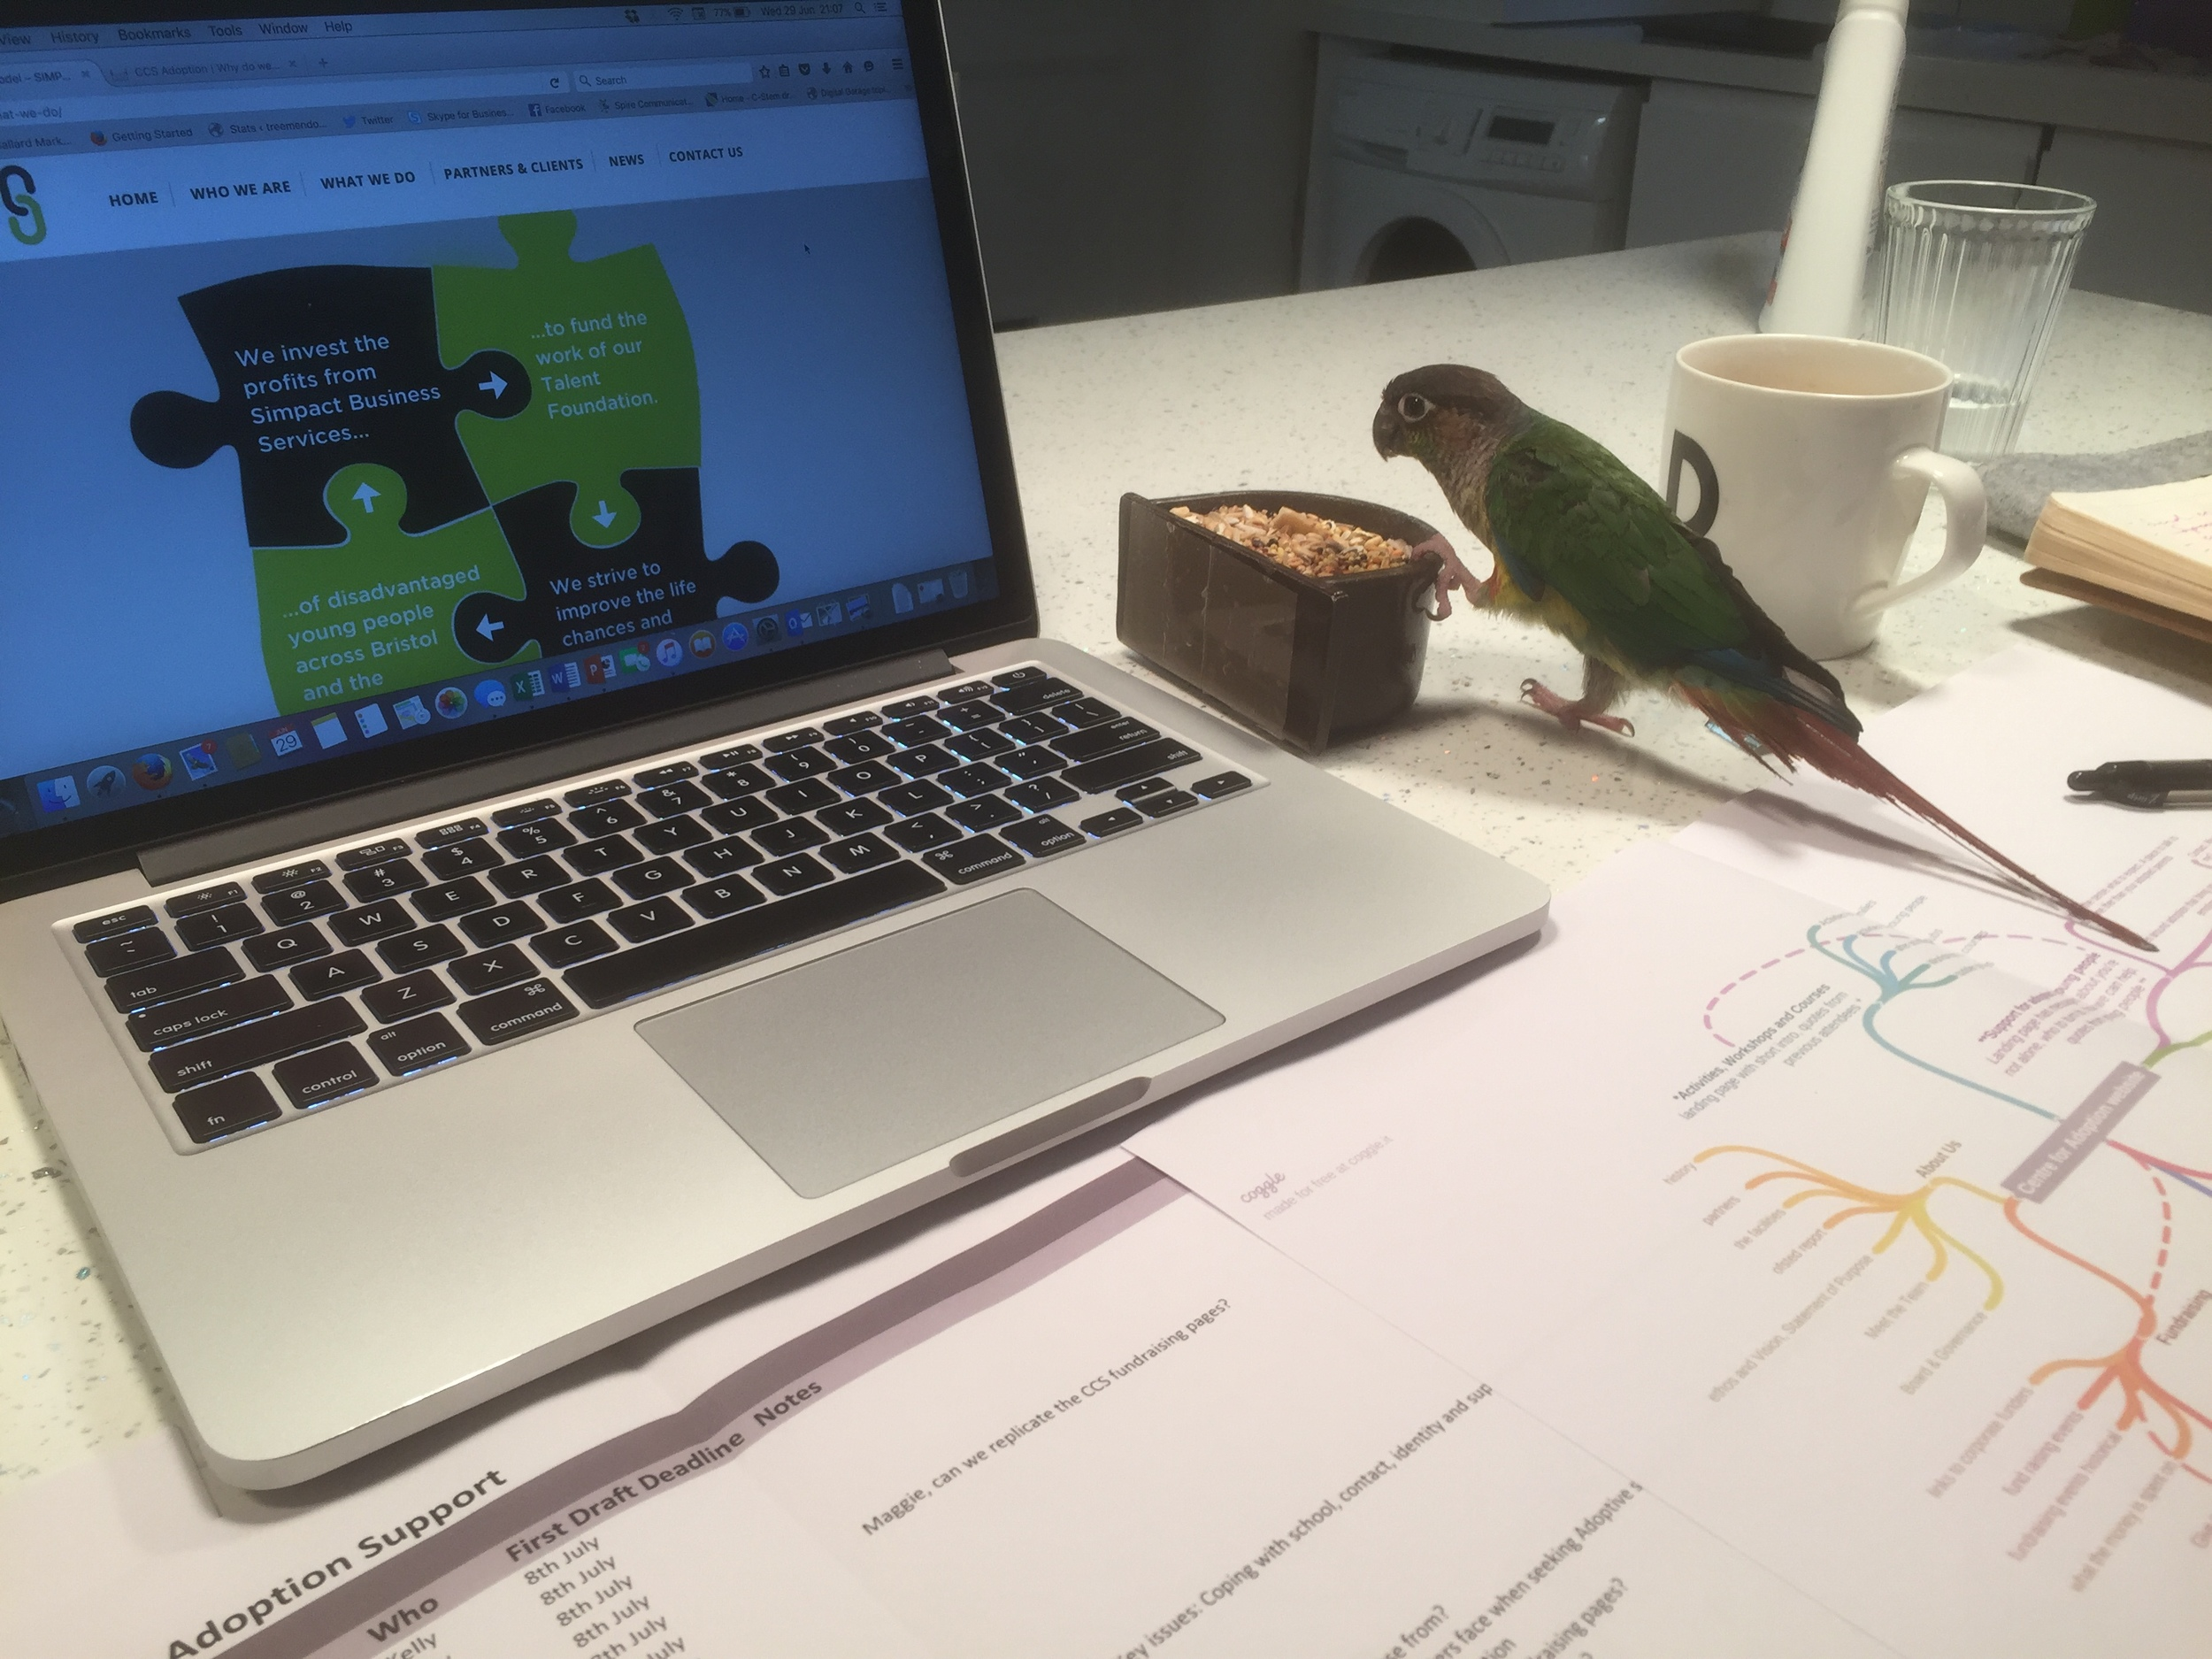 Some days I meet in coffee shops, other days I meet in Government buildings with high security.   Last week I met Jody at  Digital Fire  personal HQ for an 8pm meeting.  We were joined by Tiki the parrot.  Thank god I'm not scared of birds…as he flew from the lounge to join us in the kitchen.  Working with my new mind mapping tool from  Coggle.it  for project managing a new website.  Simplifying my sometimes disorganised thinking. Extremely important when you have parrots flying around.